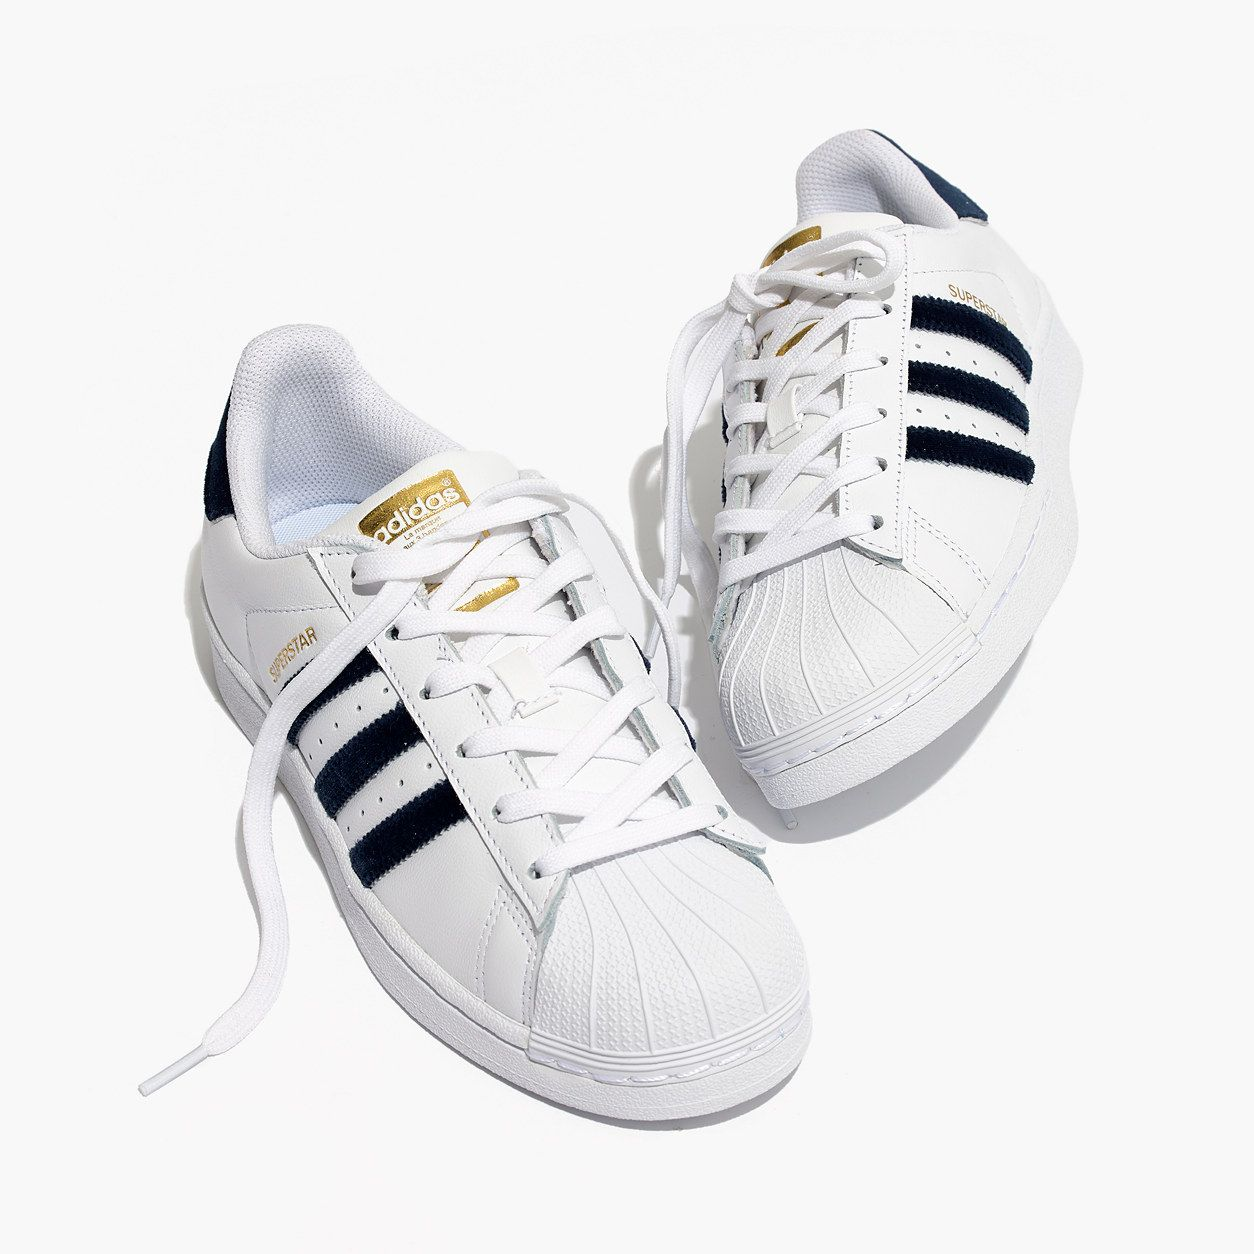 e4a0ae5cab43 Madewell Womens Adidas Superstar Lace-Up Sneakers In Velvet ...